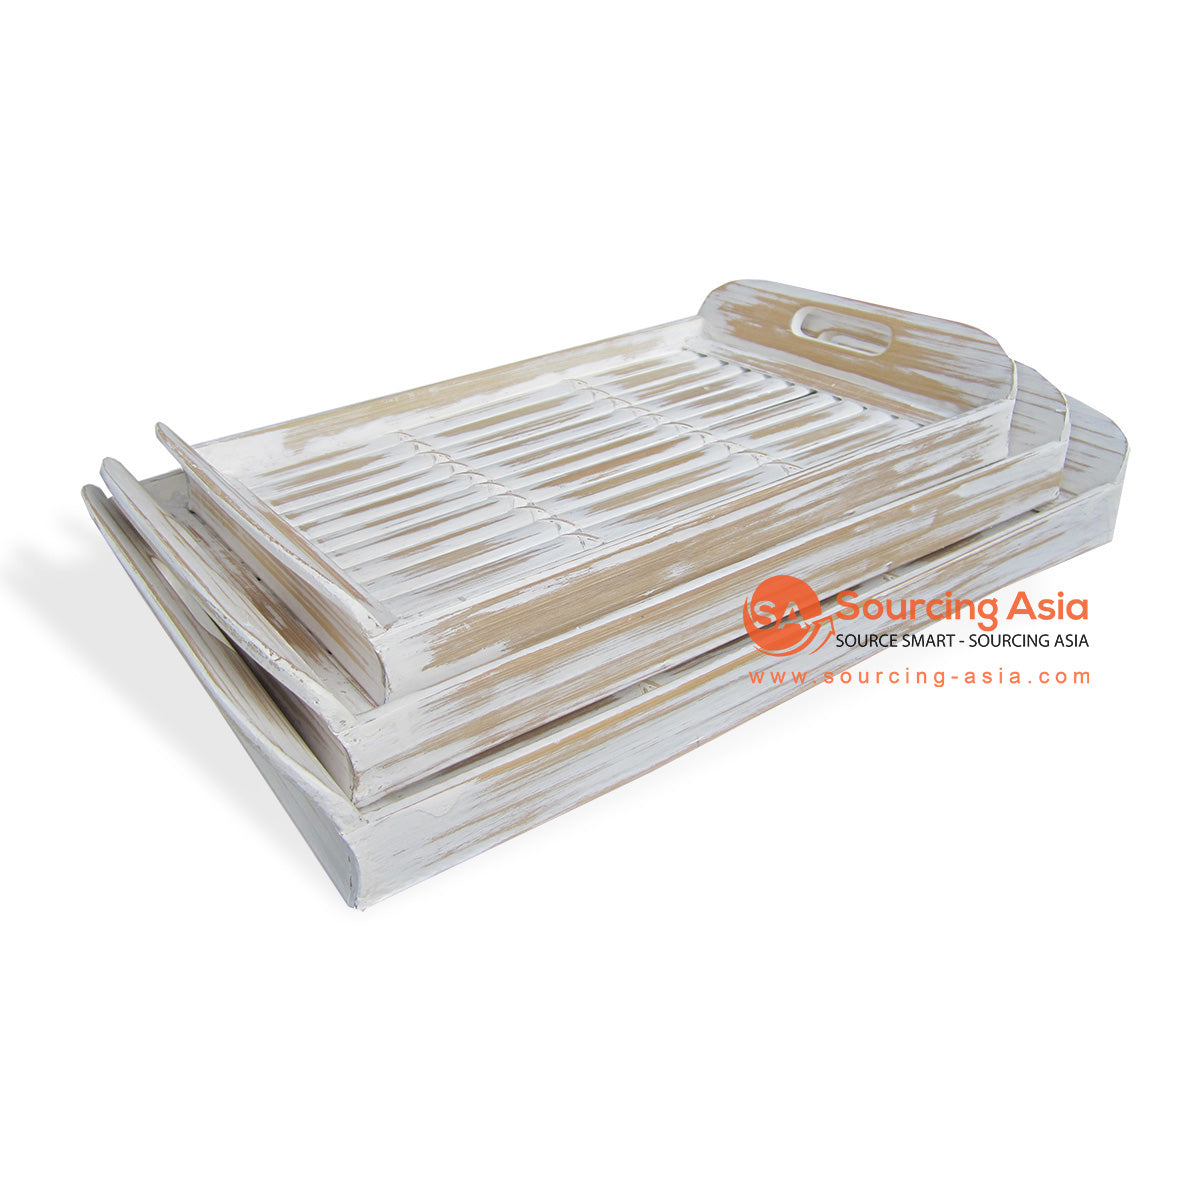 RATS023 SETS OF 3 BAMBOO TRAYS WHITE WASH